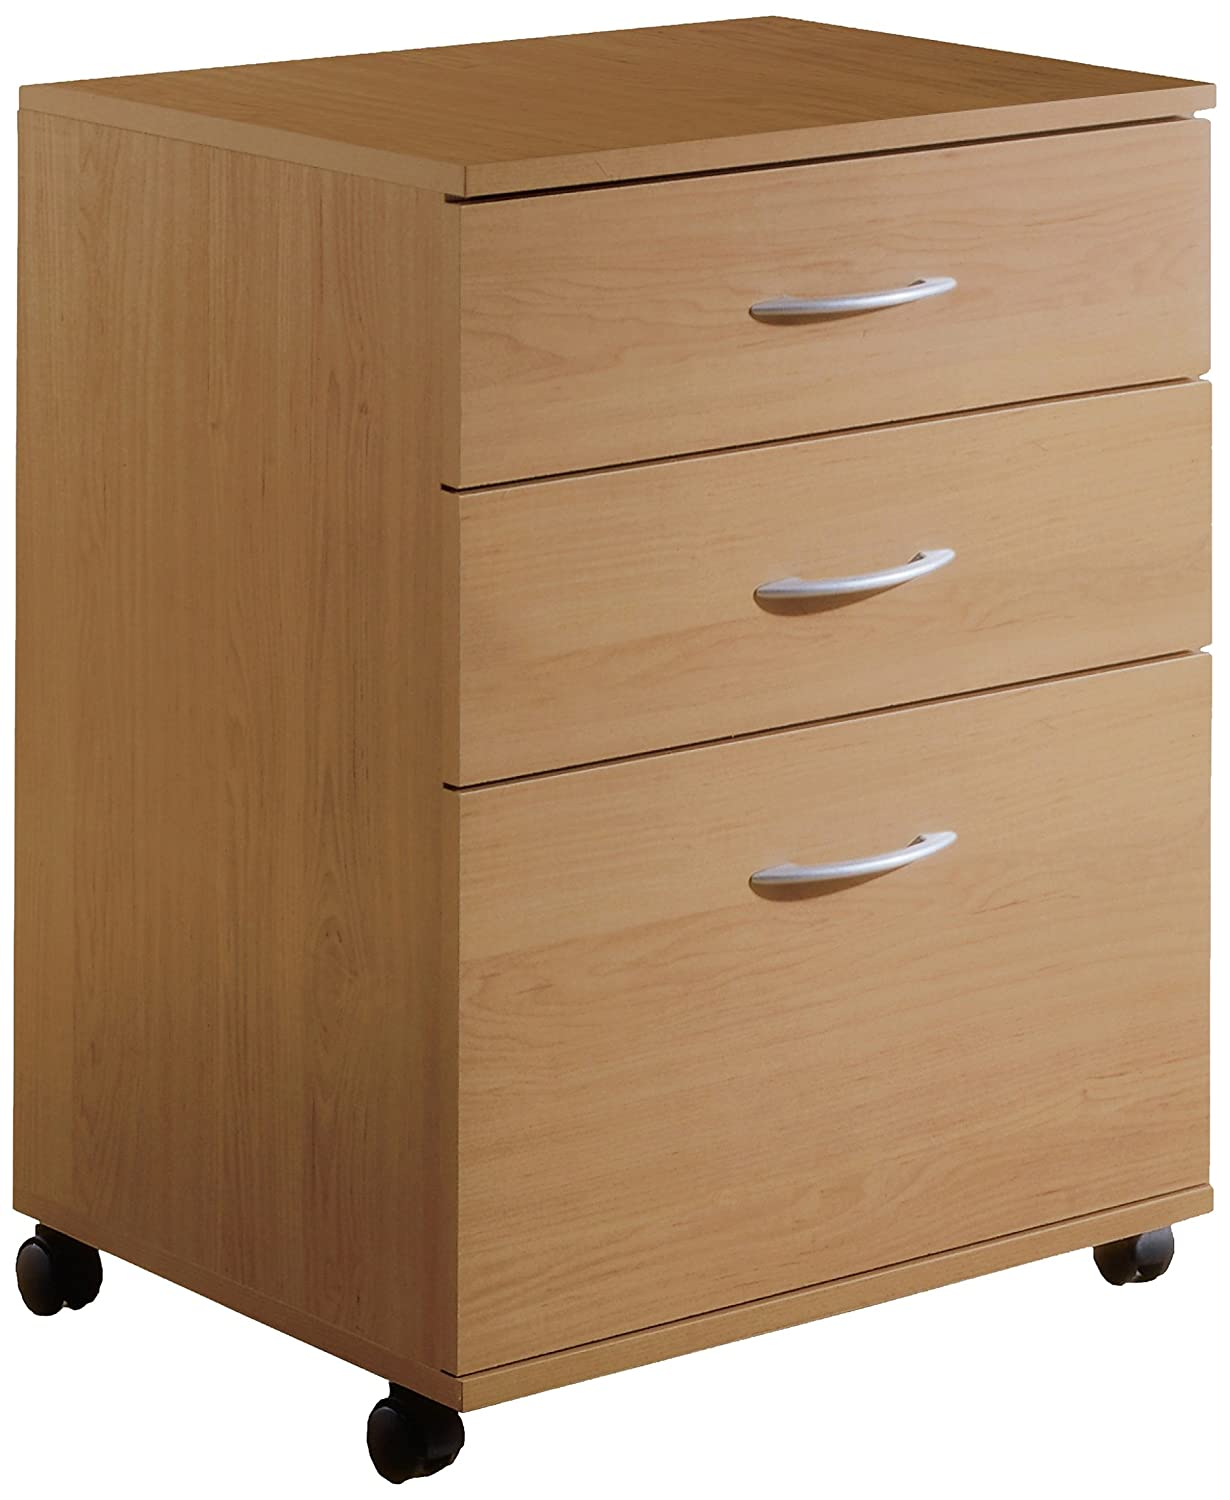 Exceptionnel Amazon.com: 3 Drawer Mobile Filing Cabinet 5092 From Nexera, Natural Maple:  Kitchen U0026 Dining